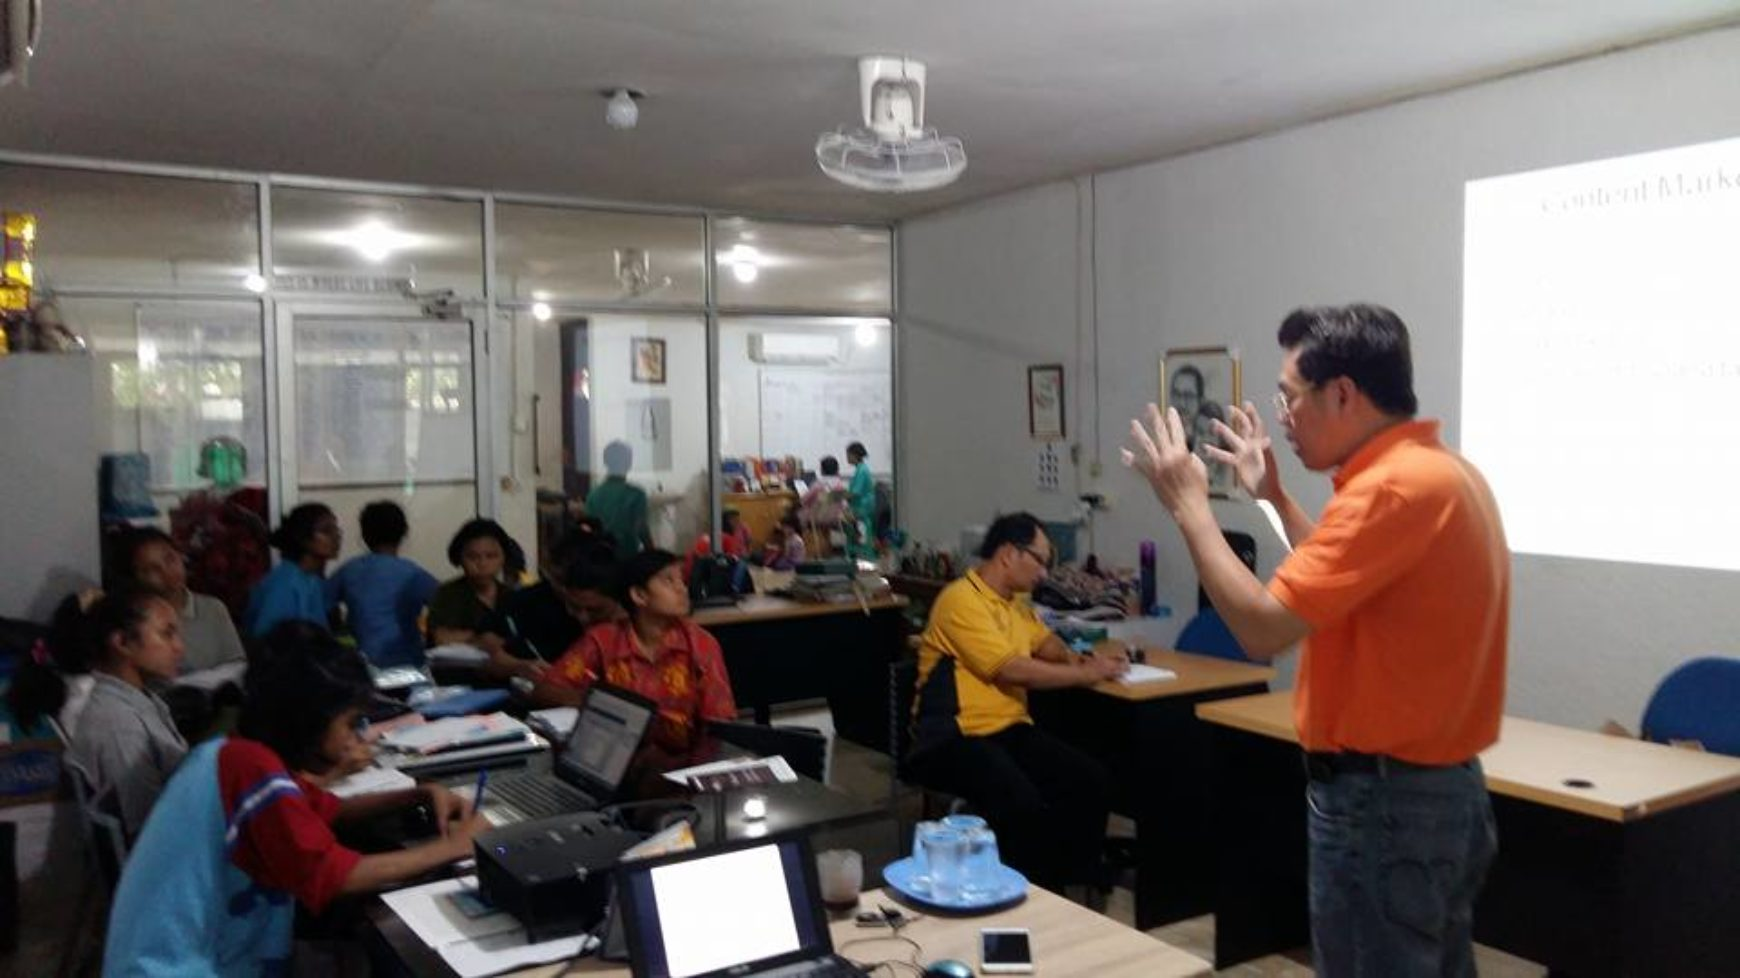 Bpk. Haryo Ardito ( DieHard Motivator dan Trainer Digital Marketing ) menjadi Coach team Markom YPU